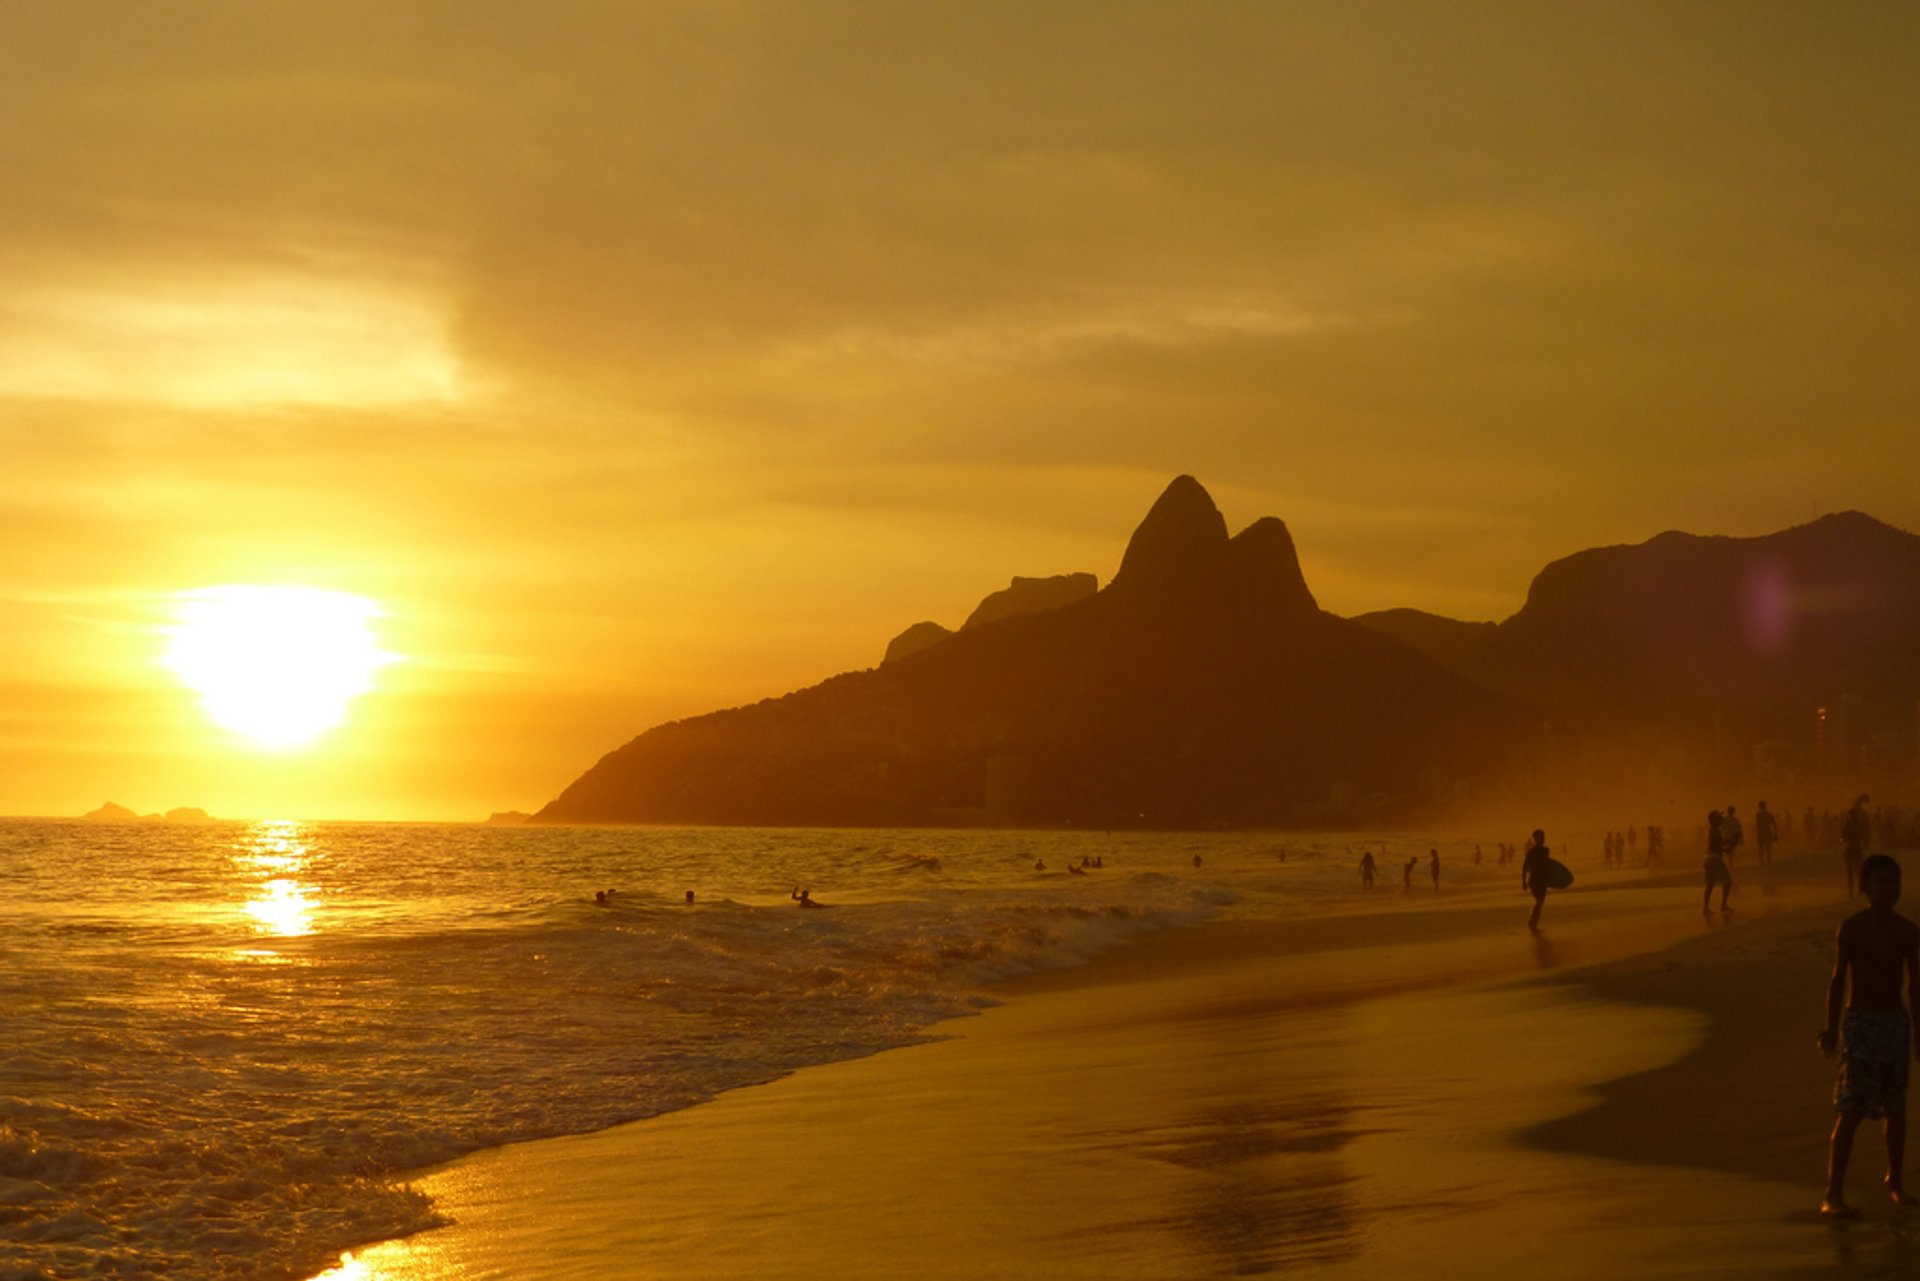 Watching the Sunset in Rio de Janeiro 2019 - Best Time